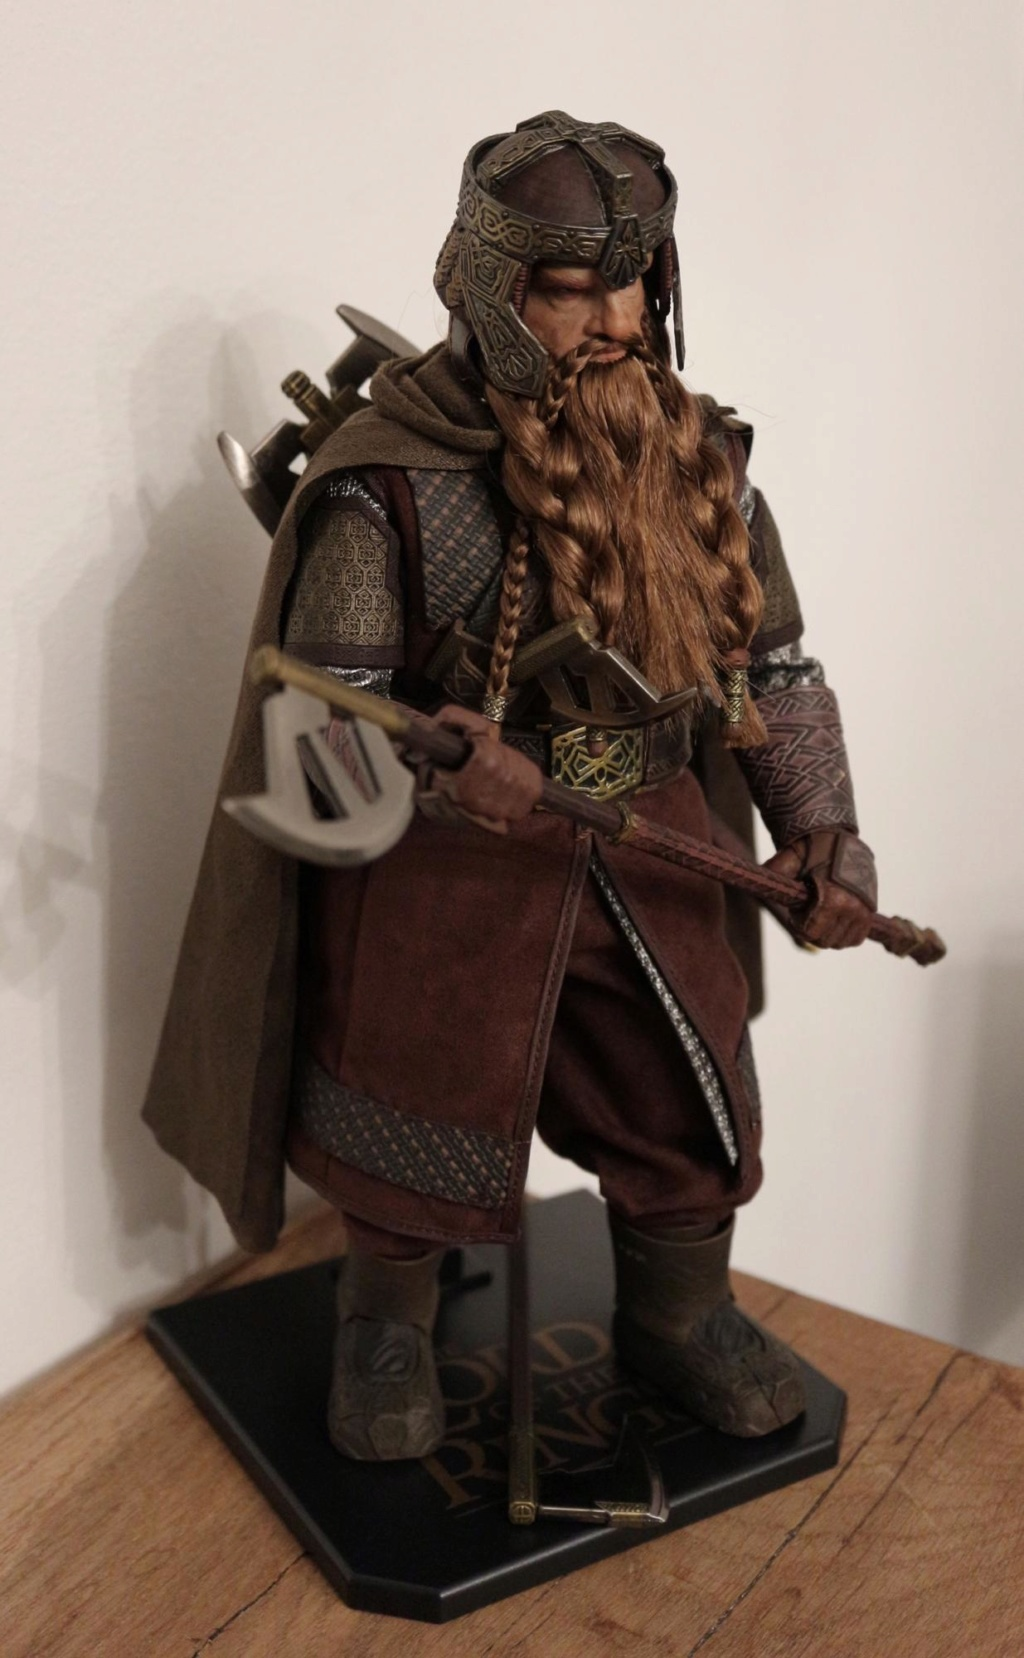 NEW PRODUCT: Asmus Toys The Lord of the Rings Series: Gimli (LOTR018) Timeme13